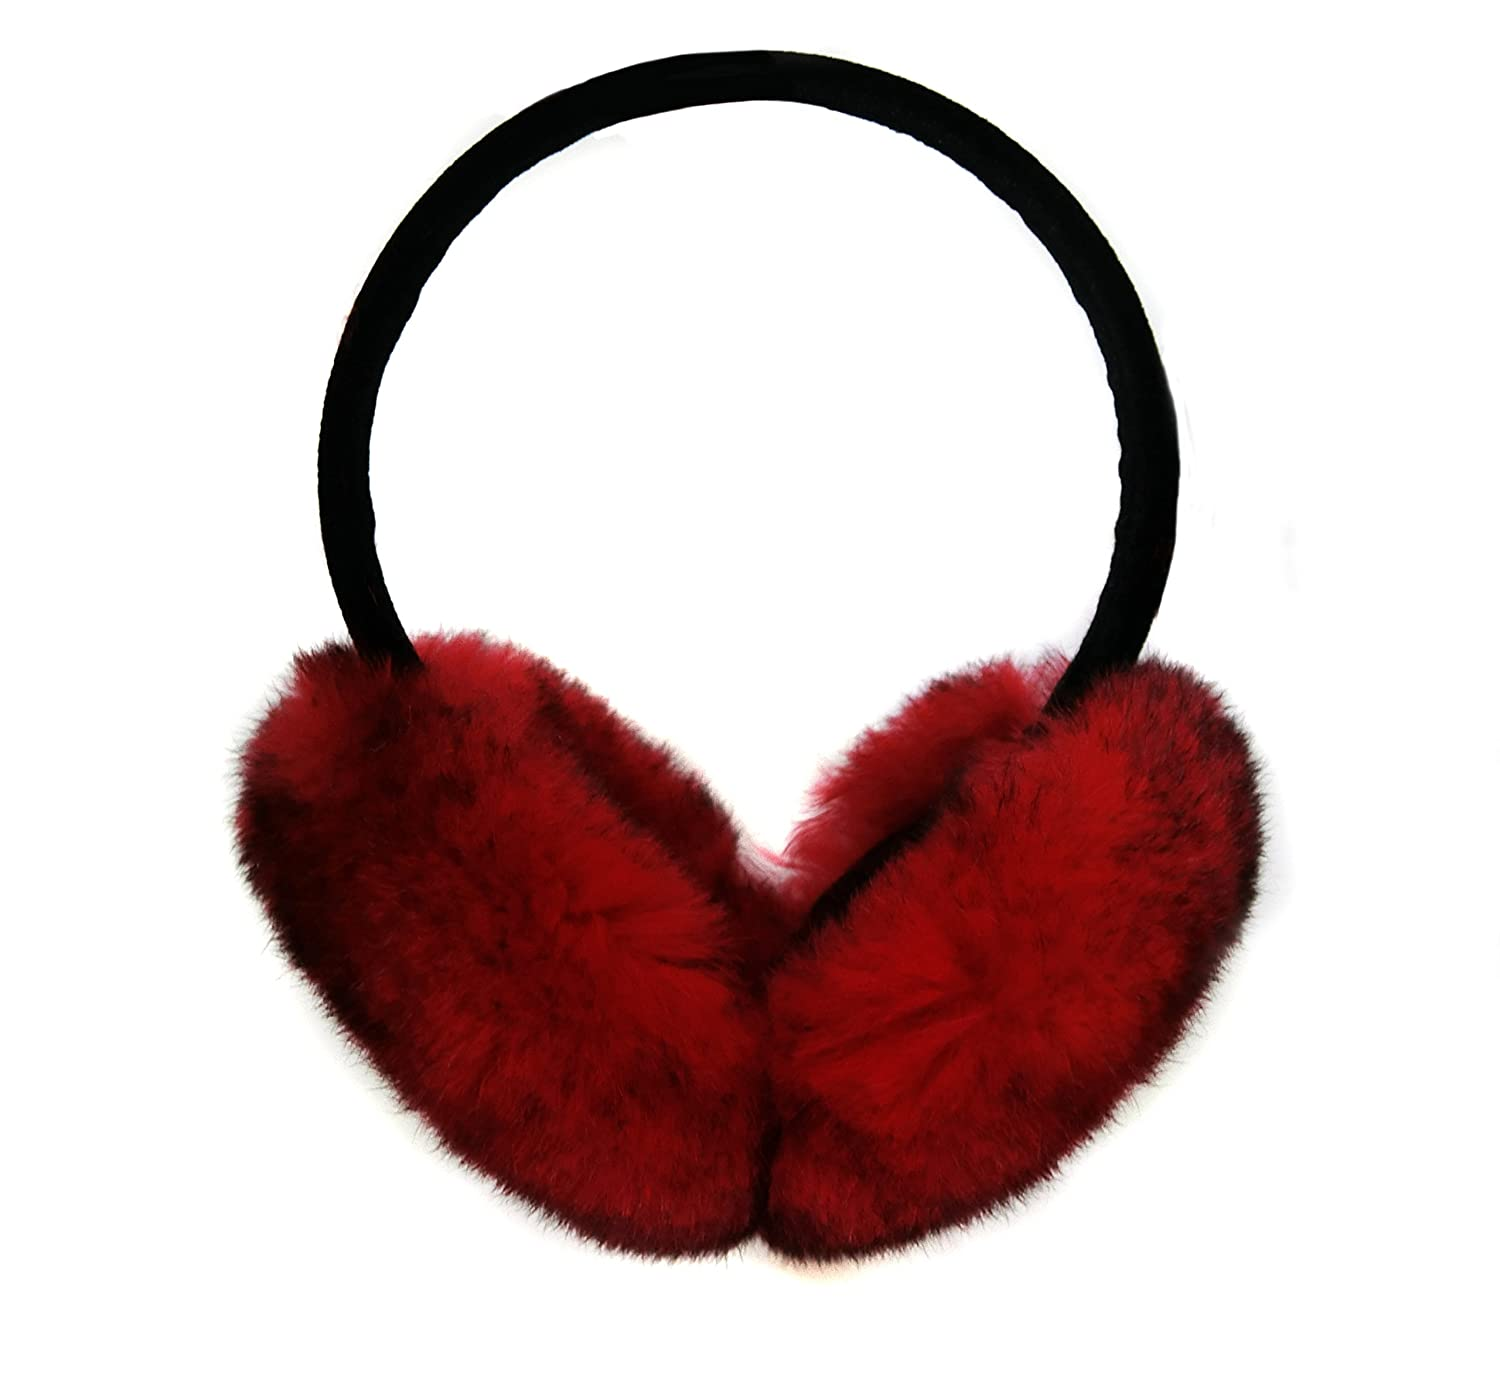 Rabbit Hair Earmuff for Winter, Soft and Warm,Foldable and Easy Carry (White) ERM-001-A